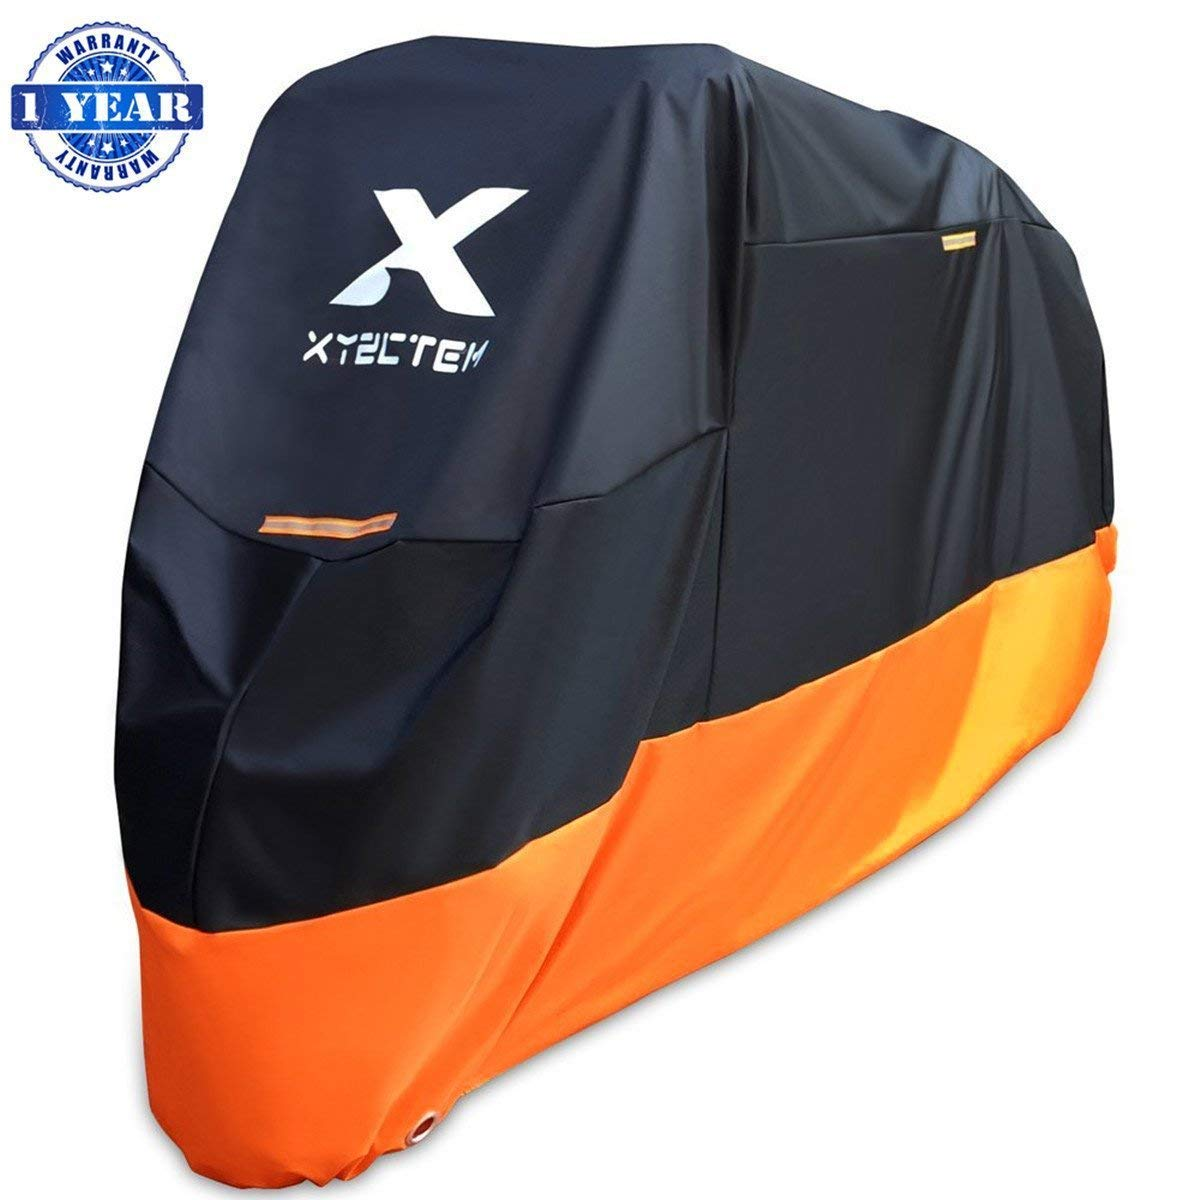 XYZCTEM Motorcycle Cover - All Season Waterproof Outdoor Protection - Precision Fit up to 108 Inch Tour Bikes, Choppers and Cruisers - Protect Against Dust, Debris, Rain and Weather(XXL,Black& Orange) by XYZCTEM